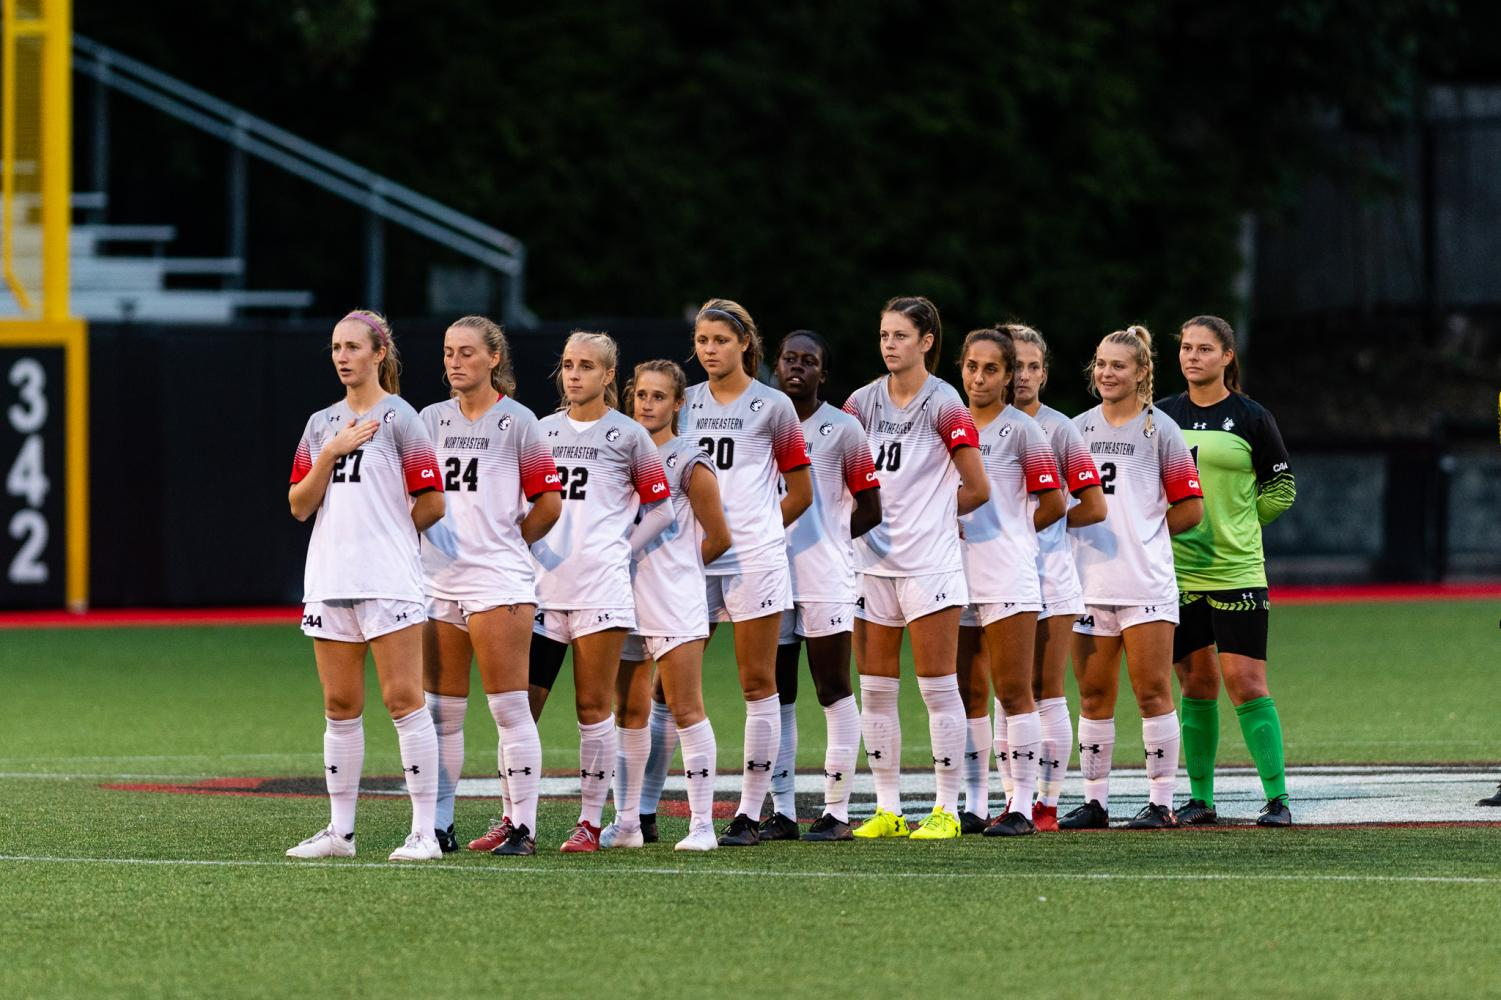 The women's soccer team lines up before the start of a game against Hofstra.